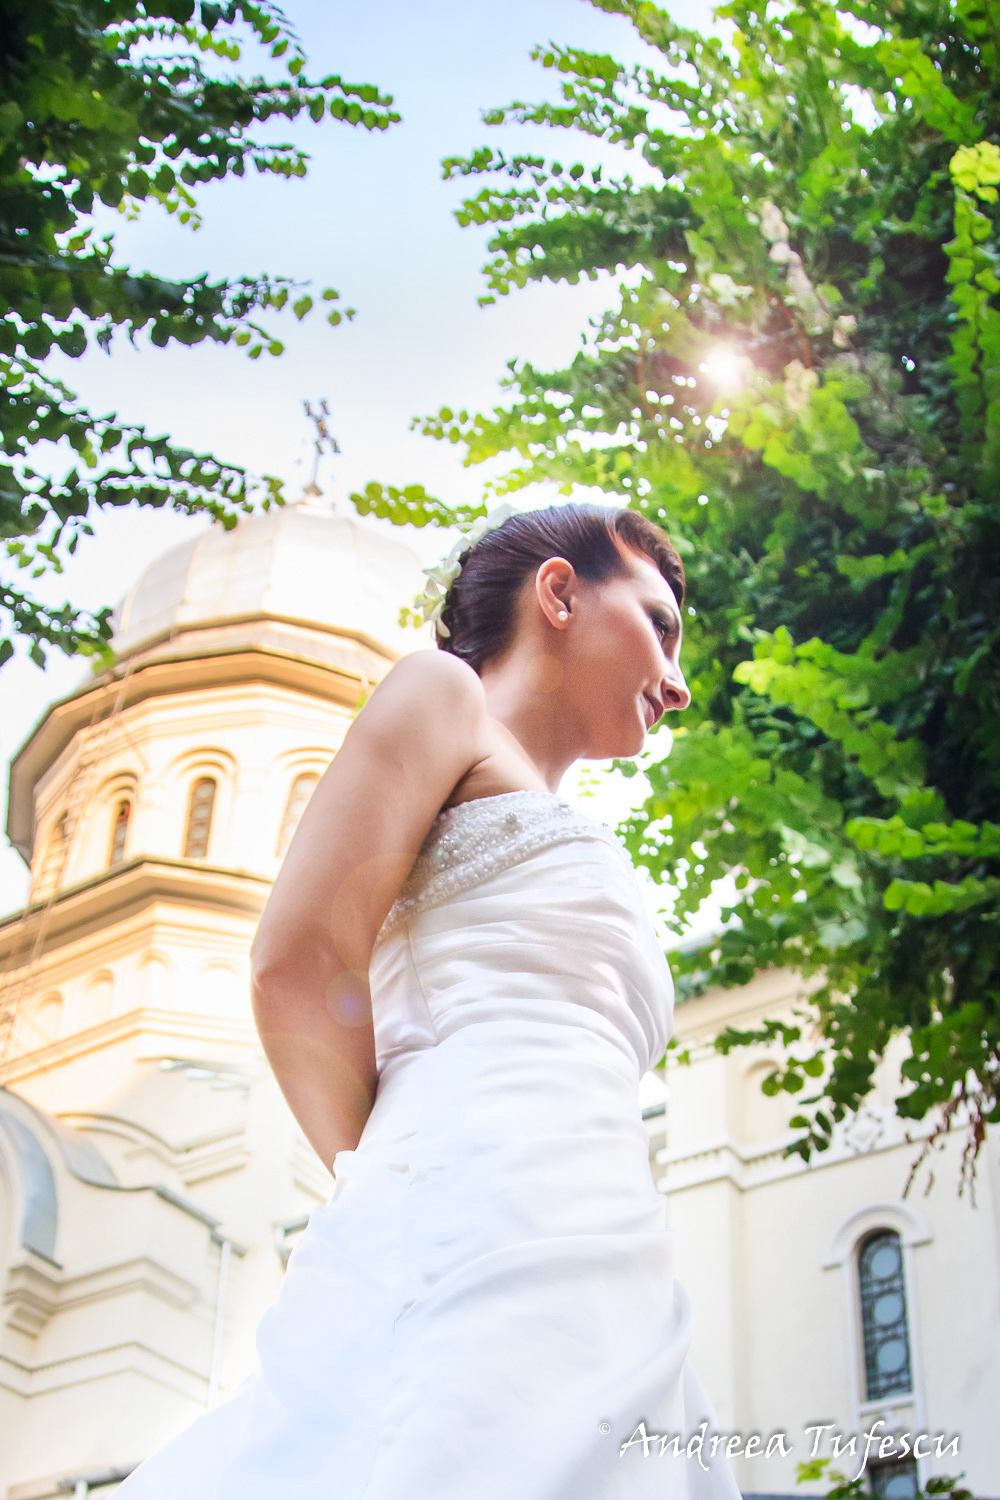 Wedding and Engagement Photography by Andreea Tufescu - C & O We